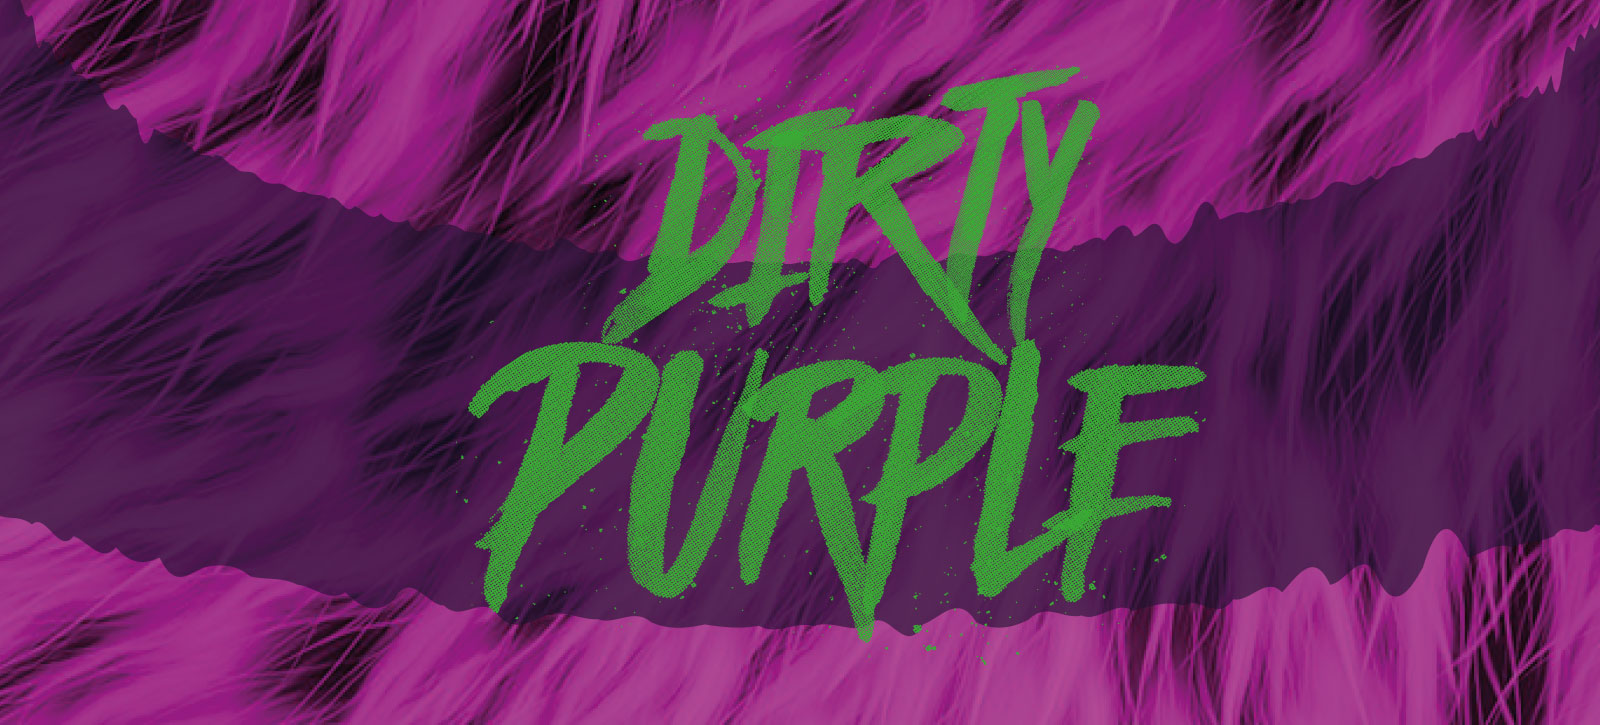 dirty-purple